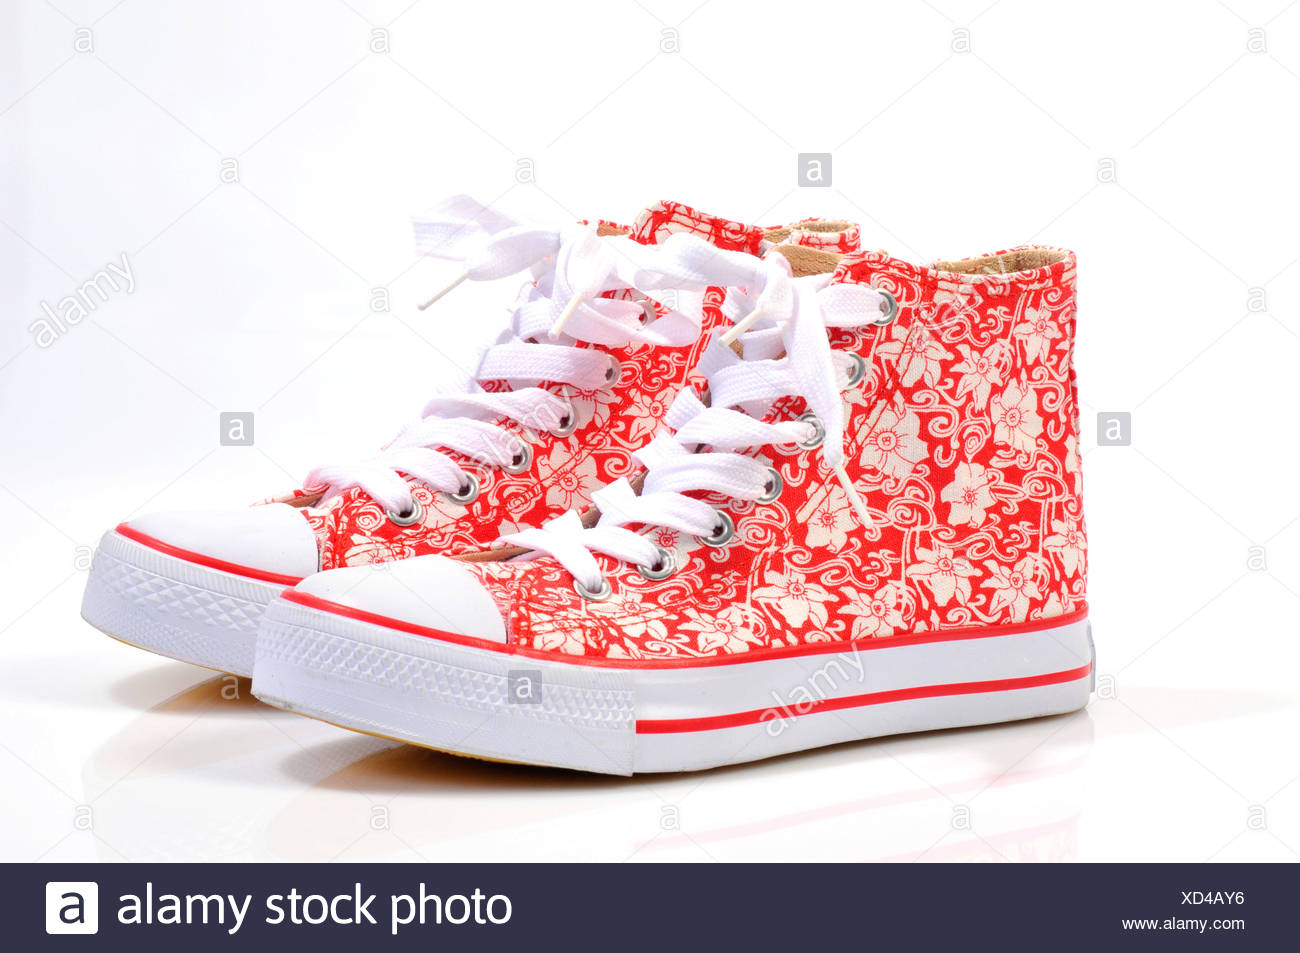 Multicoloured trainers, sneakers for girls - Stock Image